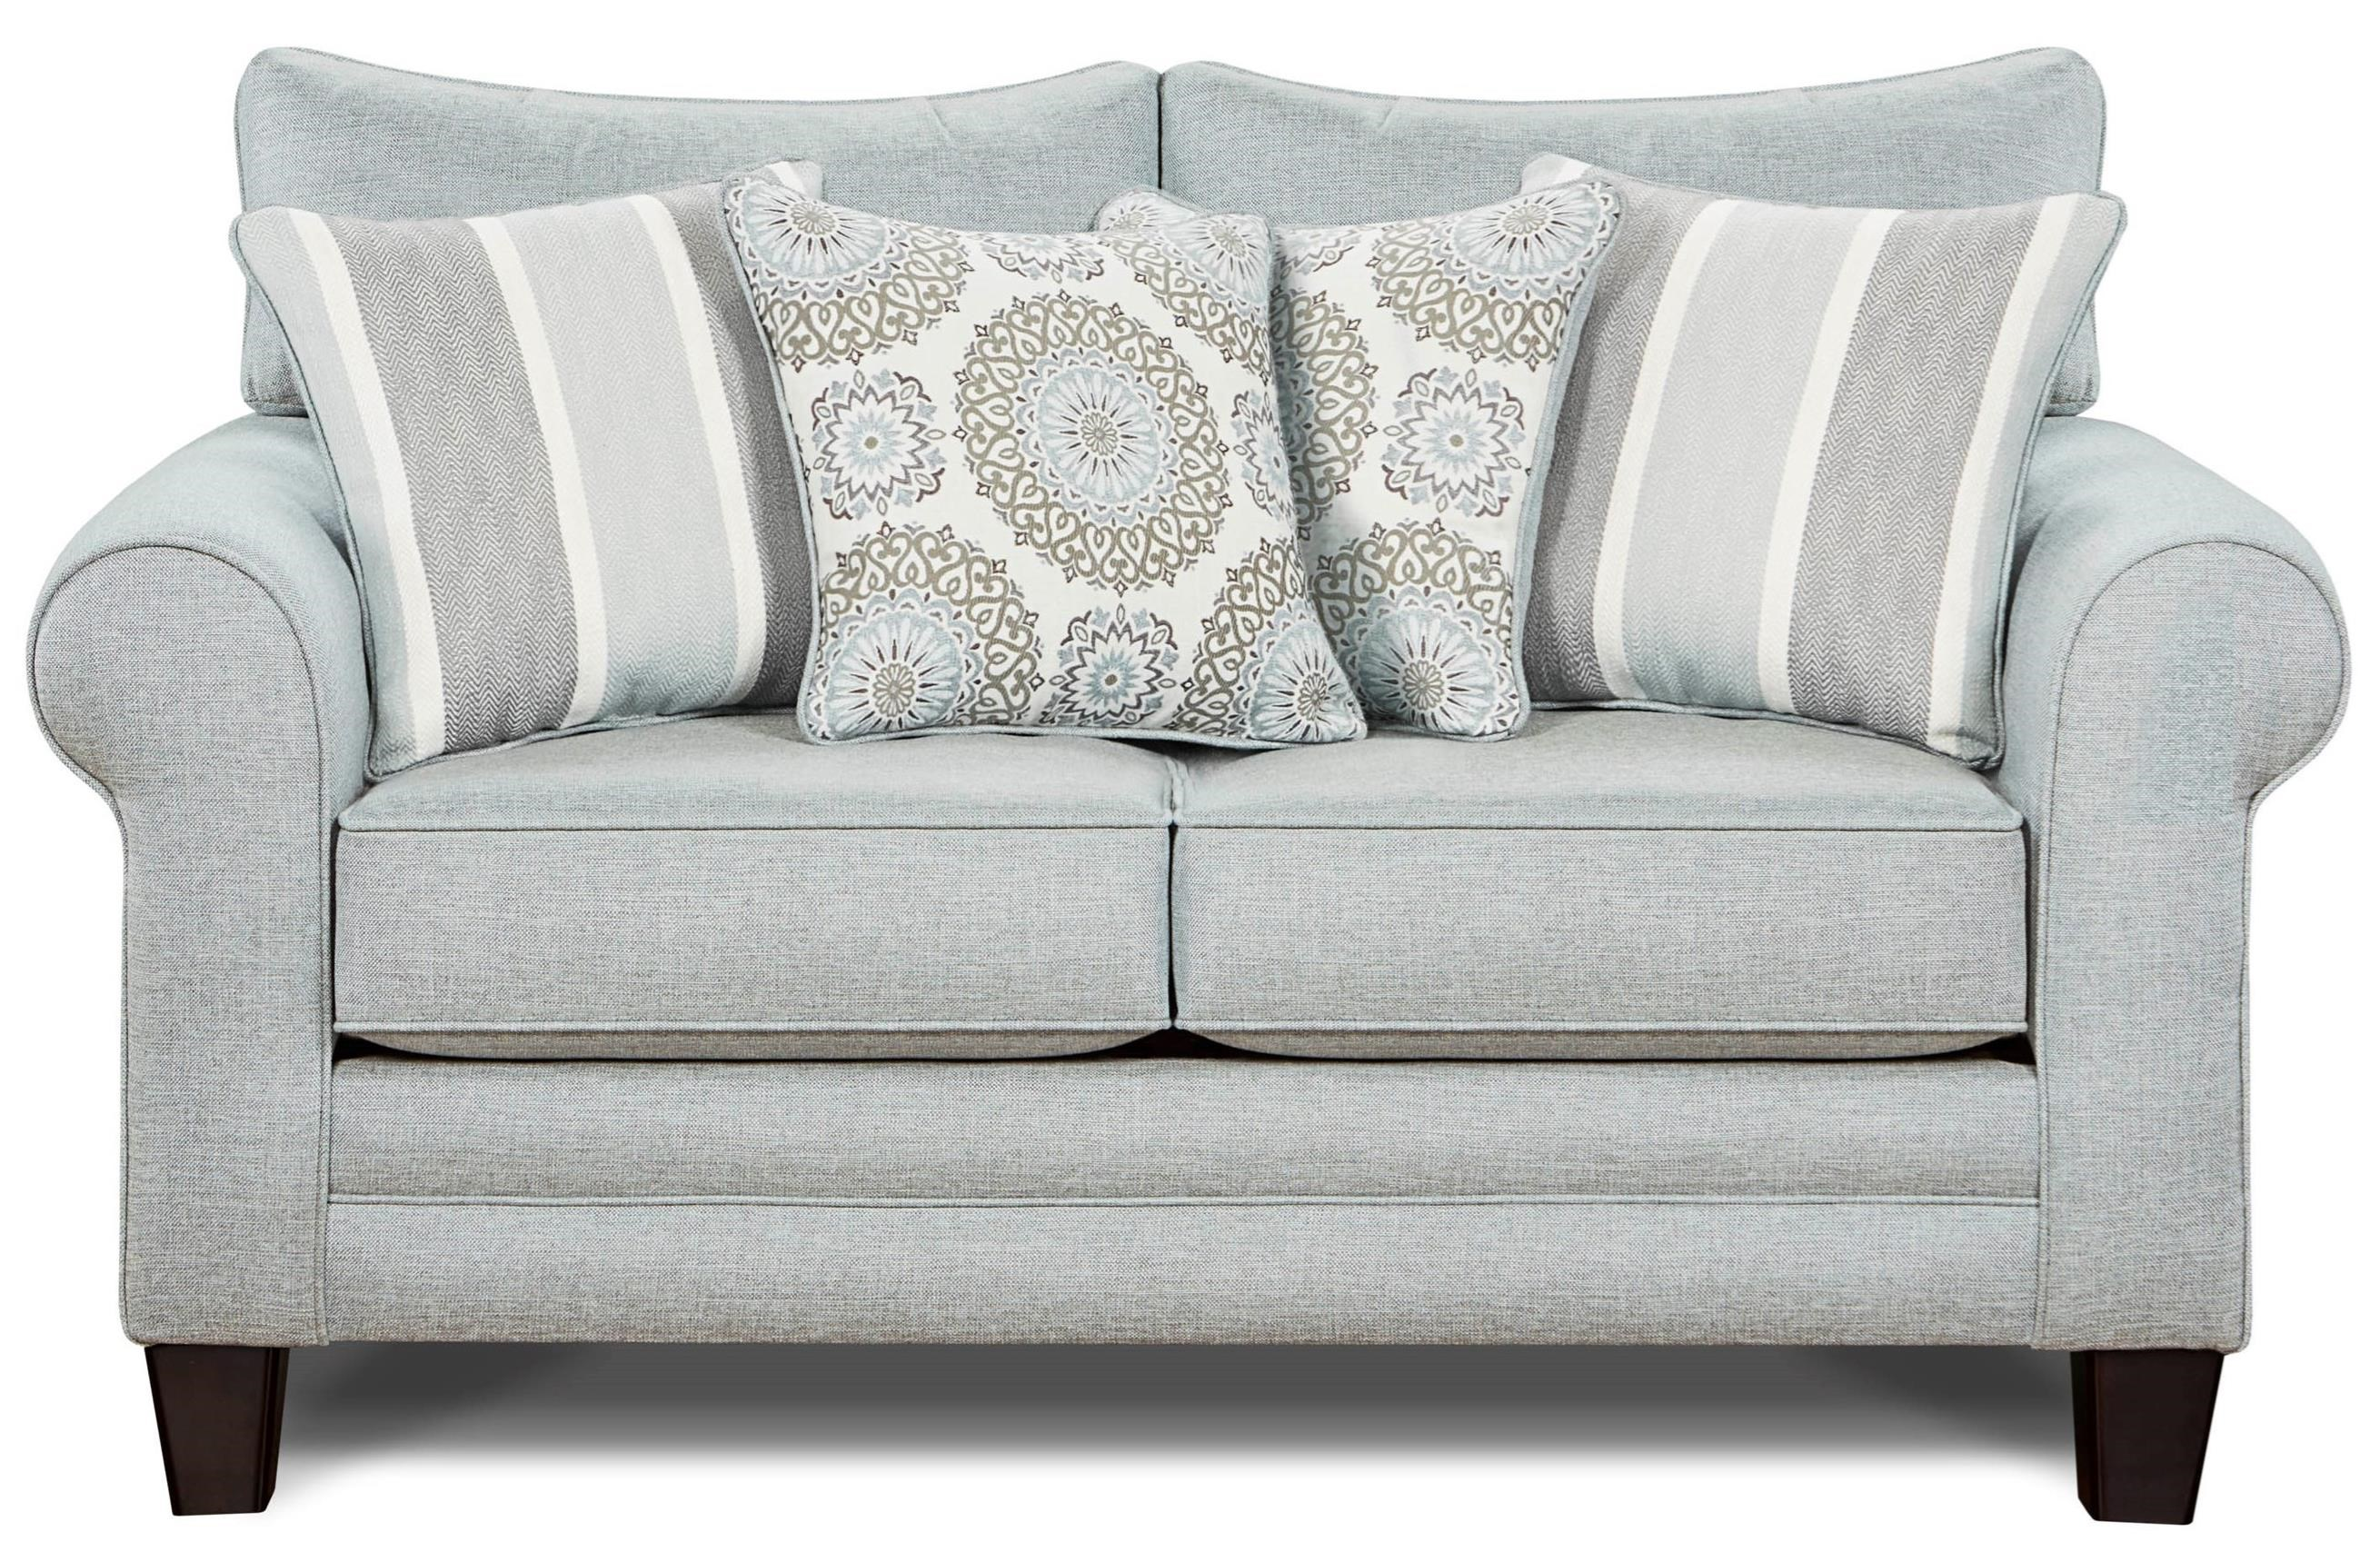 1140 Loveseat by Fusion Furniture at Furniture Superstore - Rochester, MN